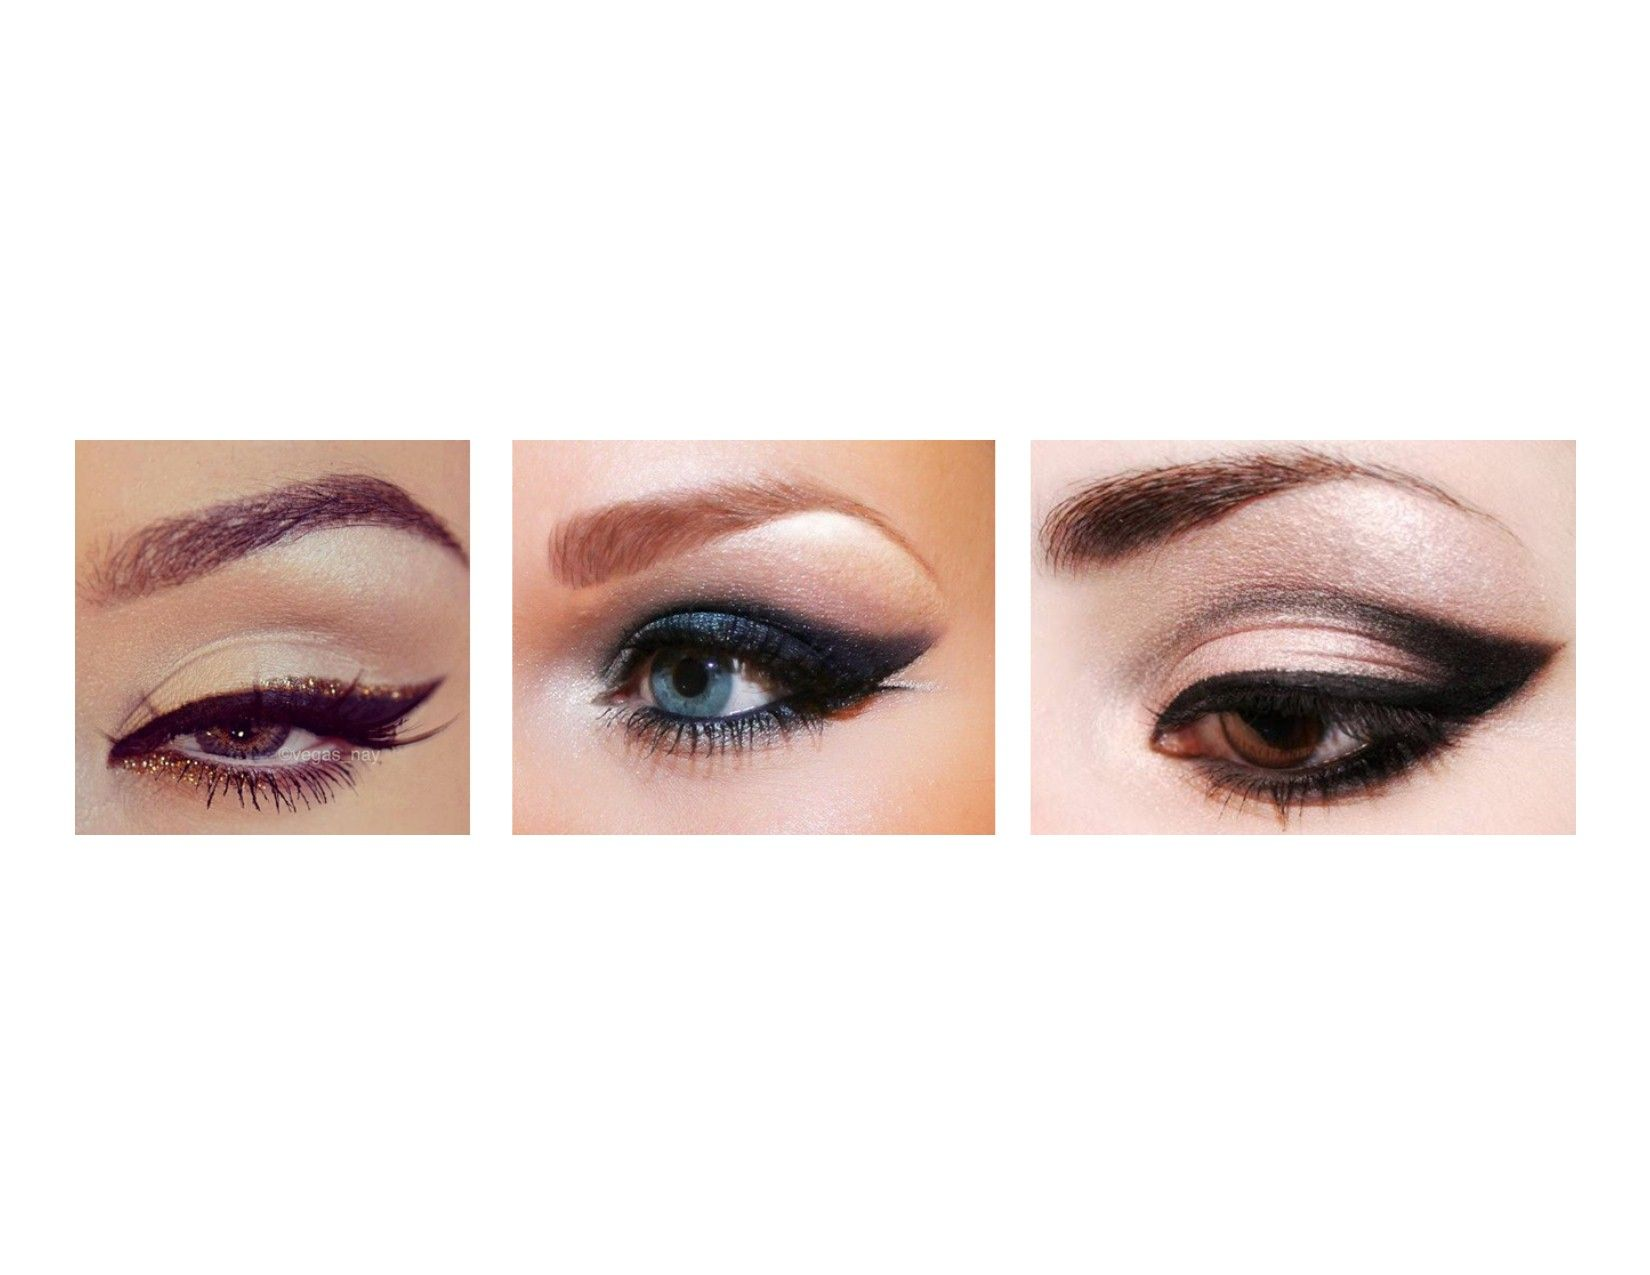 A fabulous fit MUST be accompanied by fabulous makeup...check out this eye-candy!!!